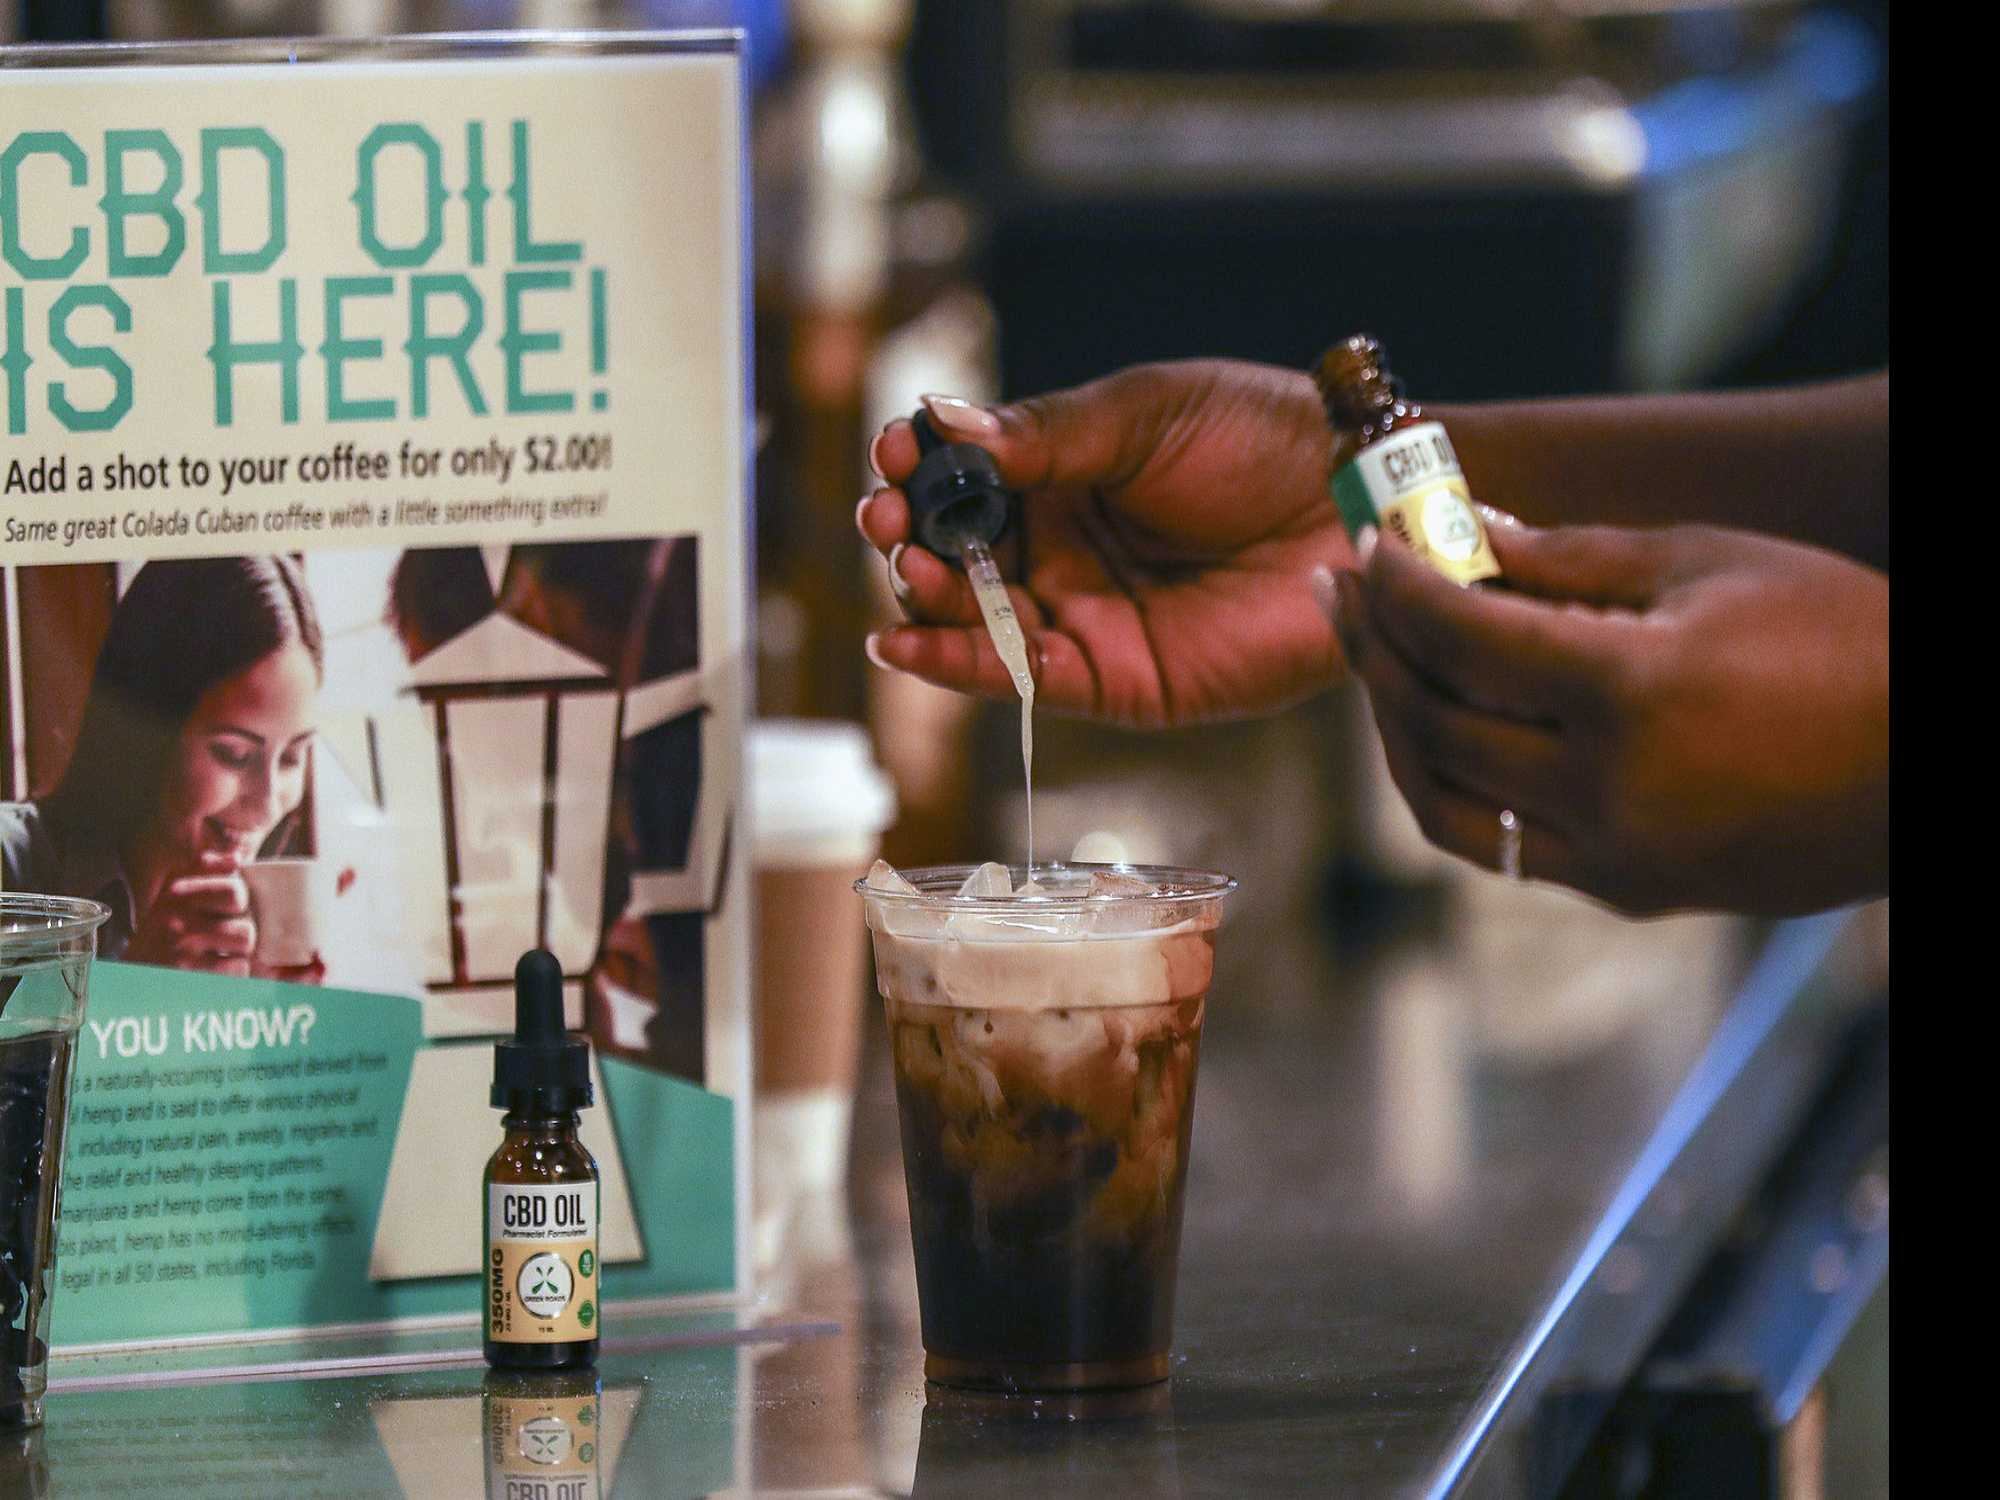 Mainstream Retailers Embrace CBD Despite Murky Status